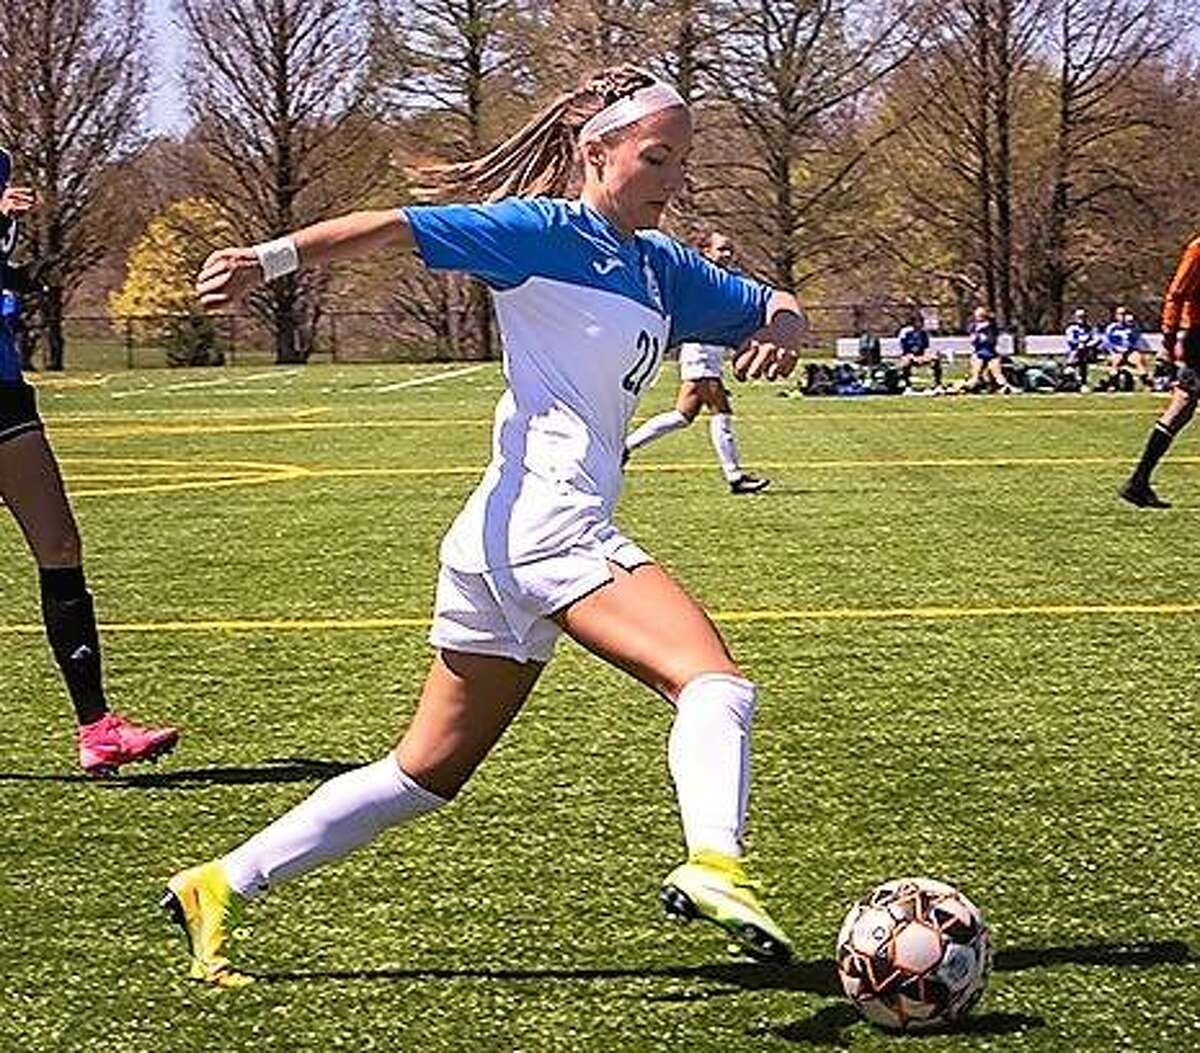 LCCC's Skylar Nickel, a freshman from Carlinville, scored the game-winning goal for the Trailblazers in Thursday's 2-1 overtime victory over Wabash Valley at Tim Rooney Field.